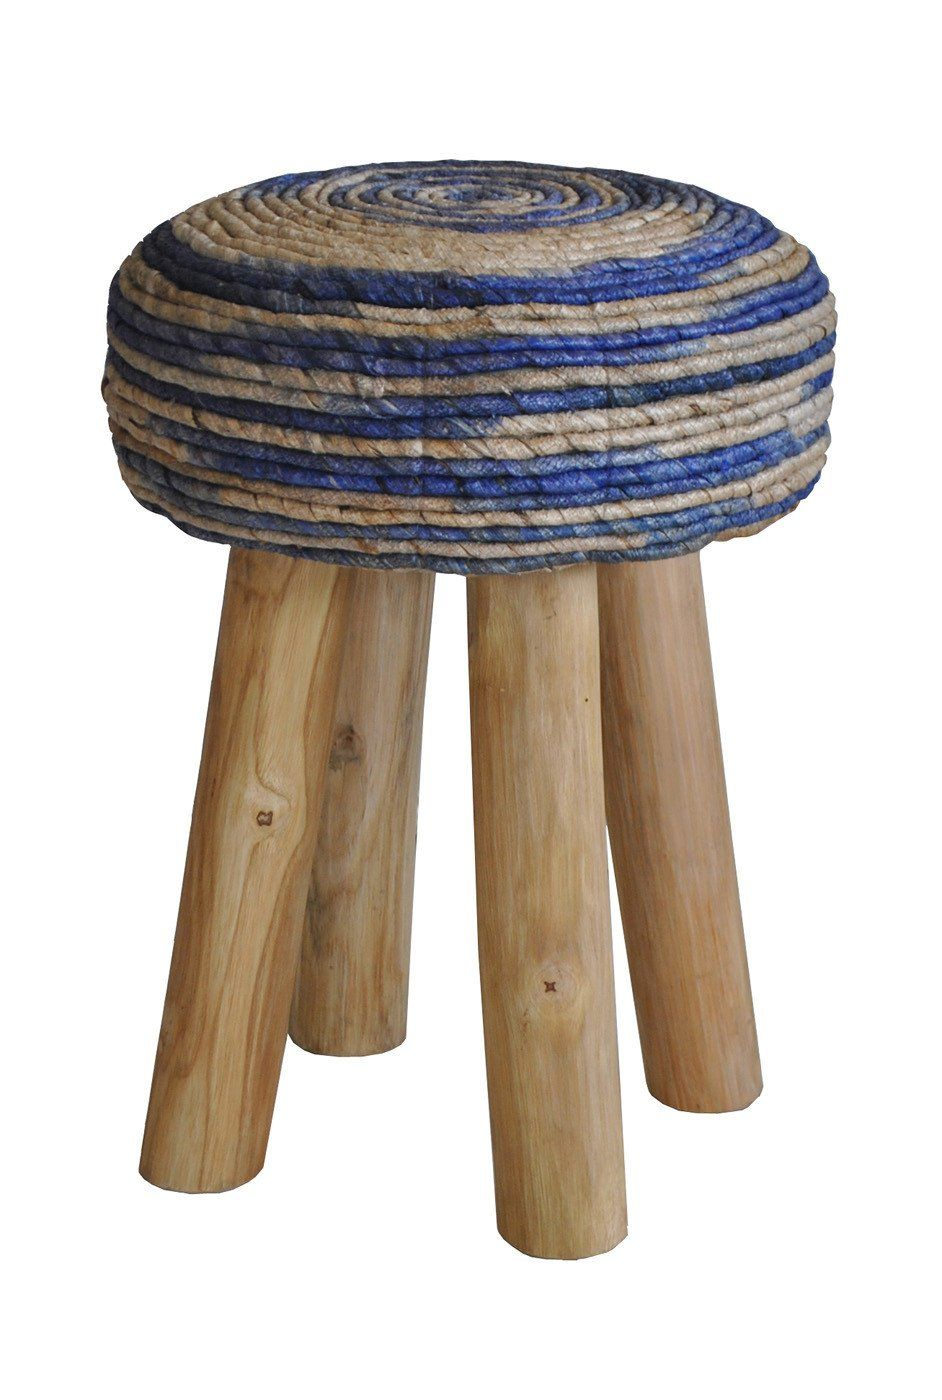 Moes Home Collection Bali Stool Round Blue Palm Leaf Solid Teak Wood ...